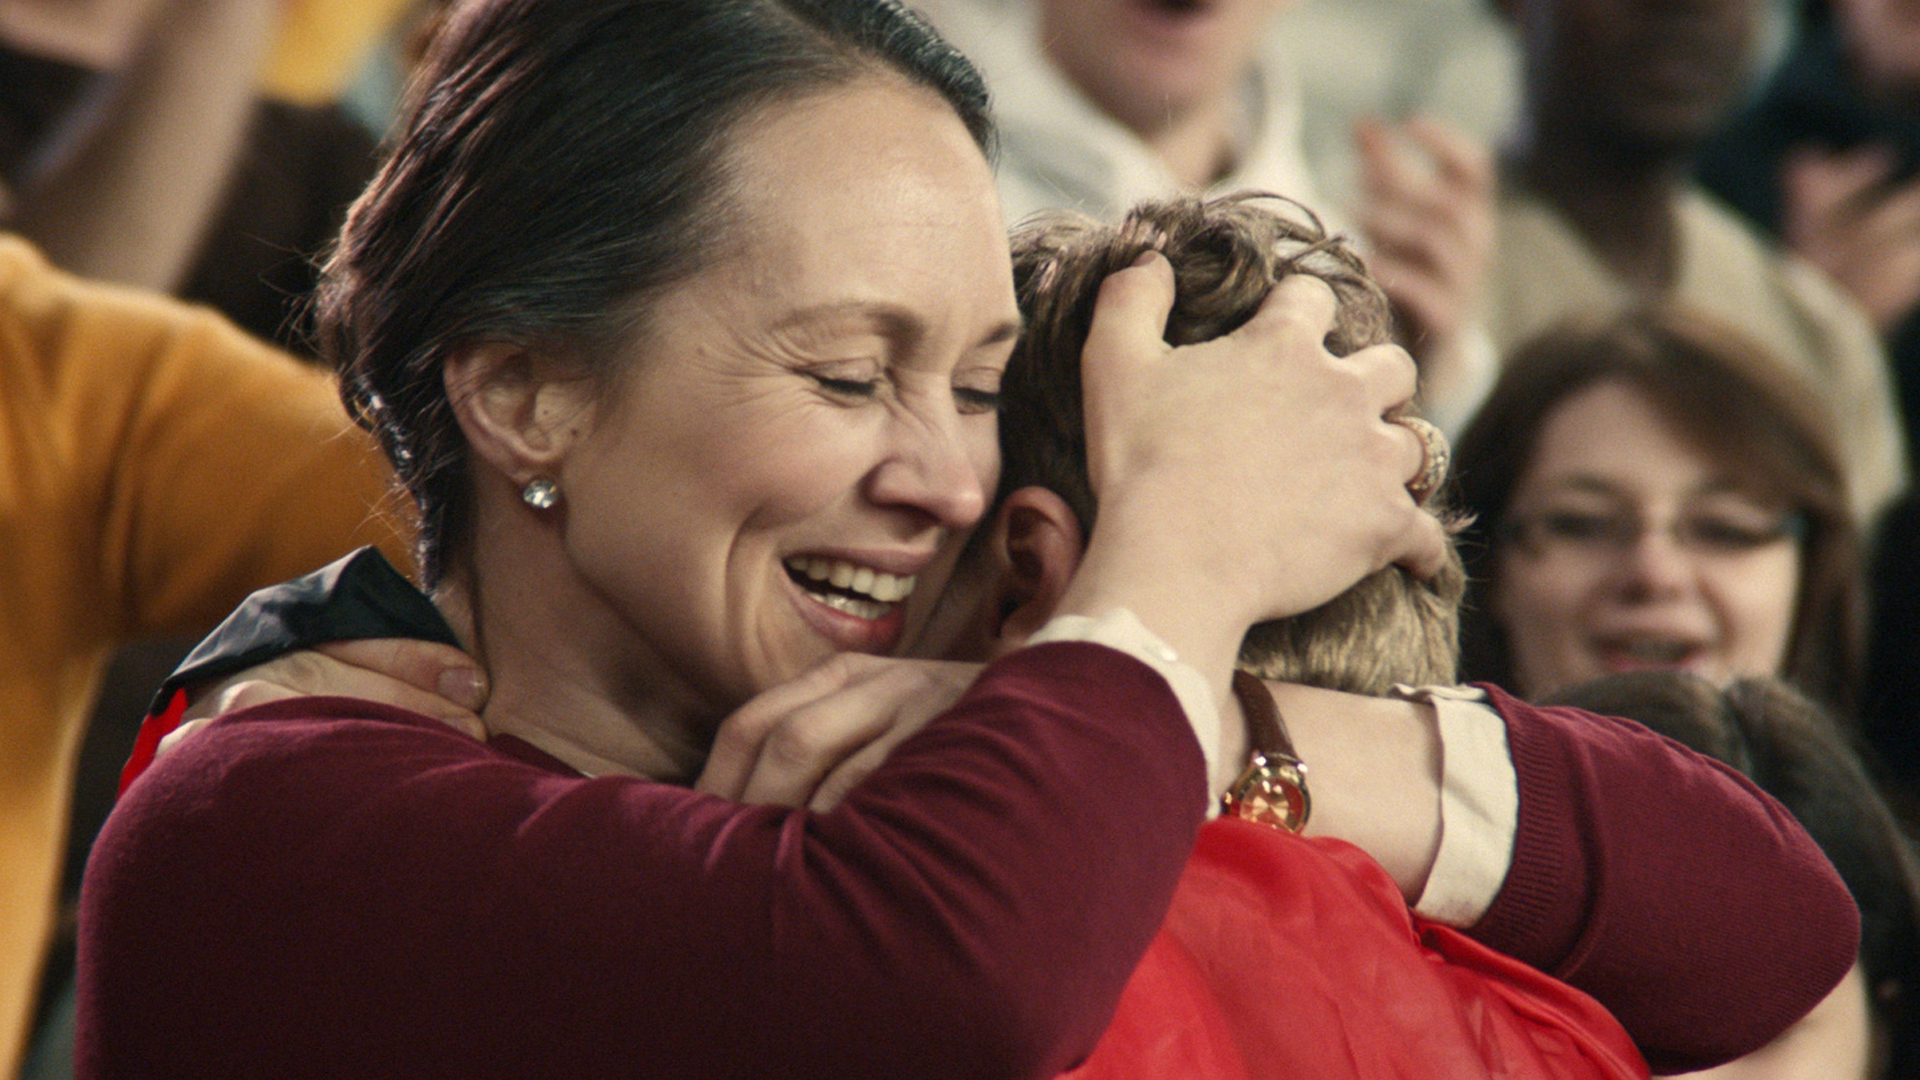 Thumbnail for P&G Brands Unite to Support Strong Moms at Rio 2016 Olympic Games